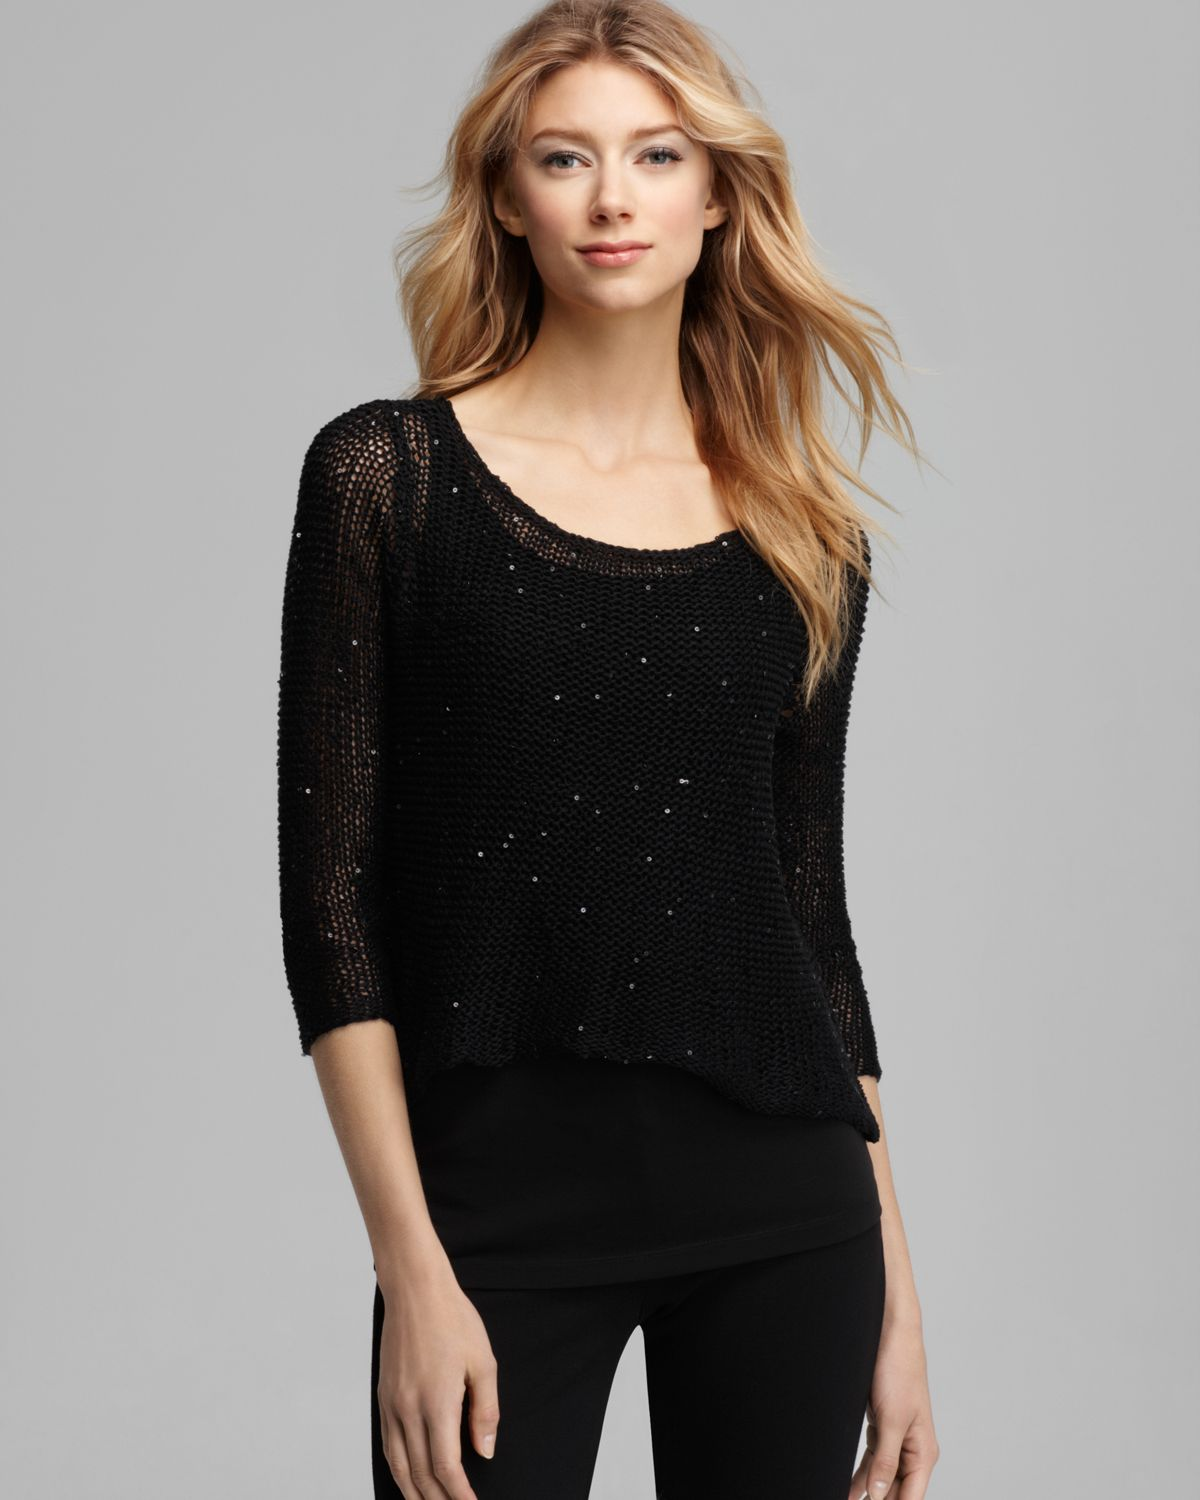 Eileen fisher Sequin Chainmail Knit Sweater in Black Lyst